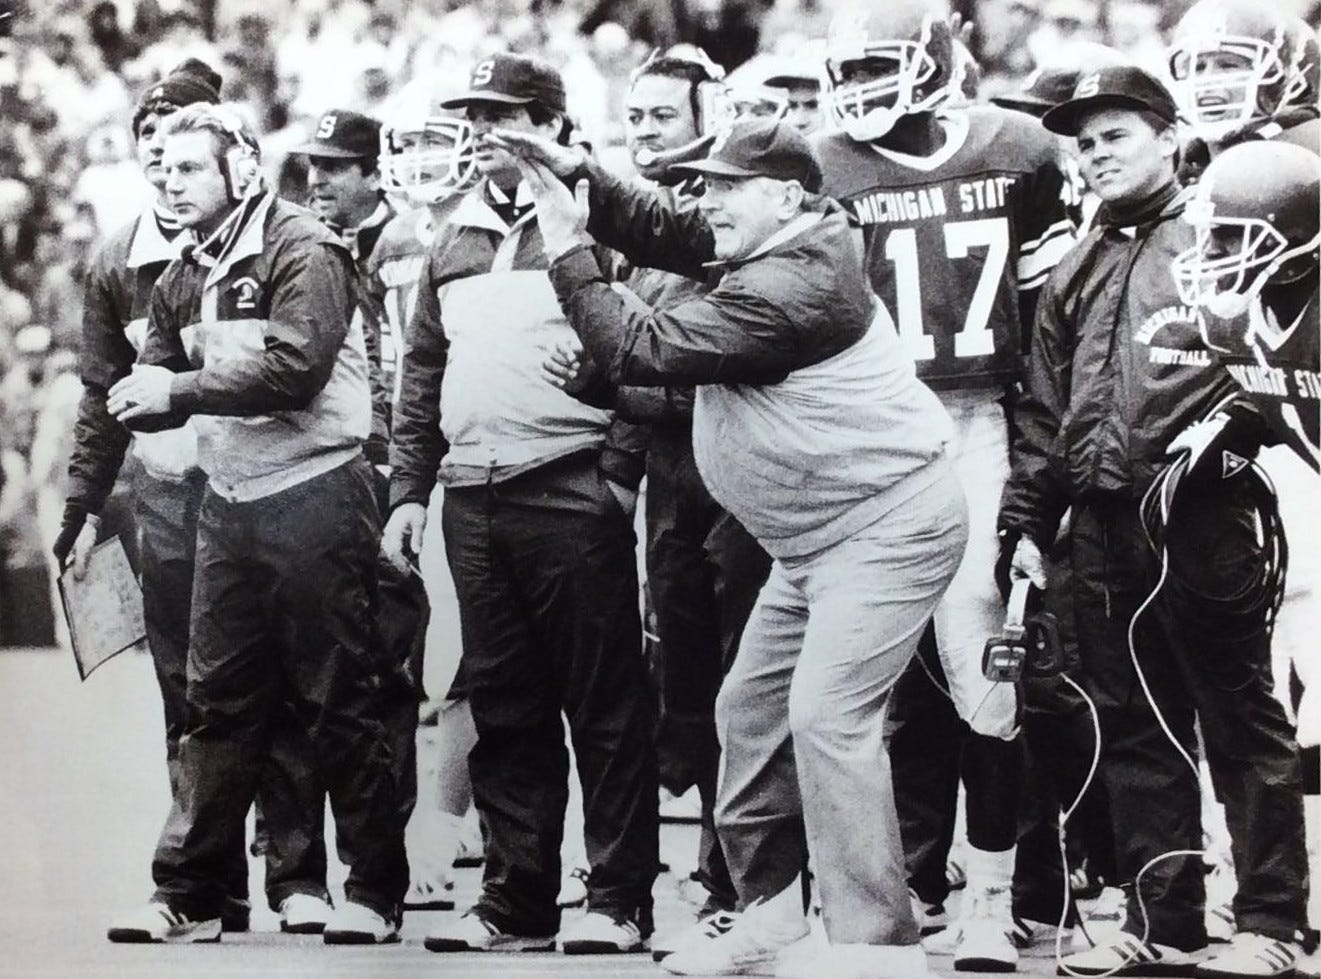 MSU Football Coach George Perles calls a frantic time out in the last seconds of the MSU/Illinois game to attempt a winning field goal that was blocked, Jan. 27, 1988.